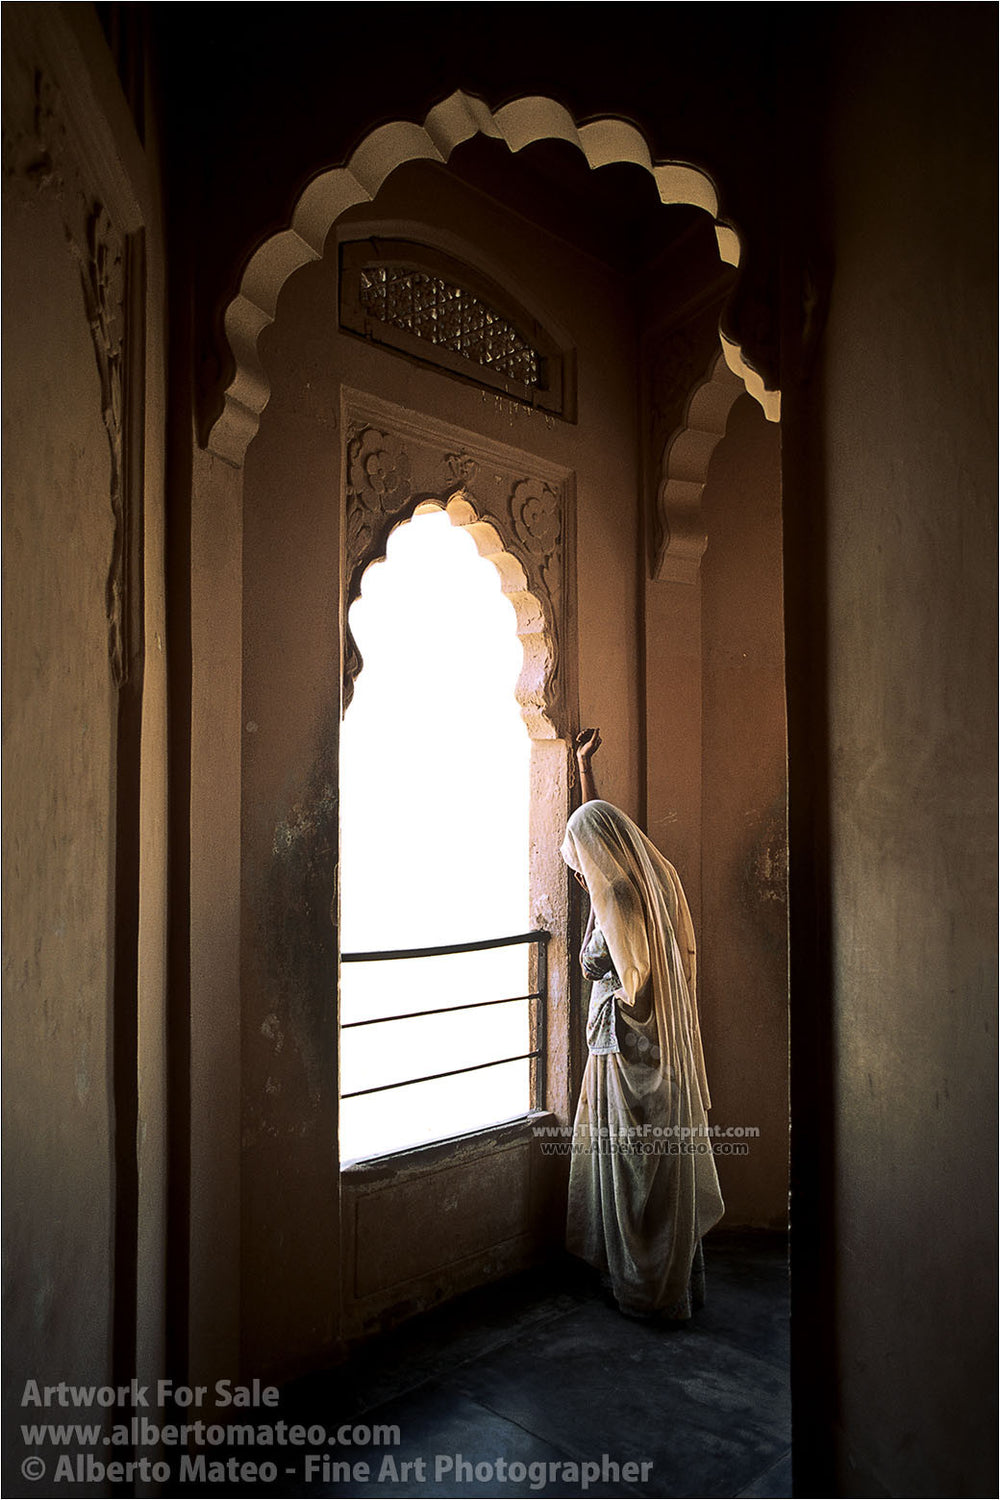 Woman next to Window, Udaipur. | Alberto Mateo, Fine Art Photographer.